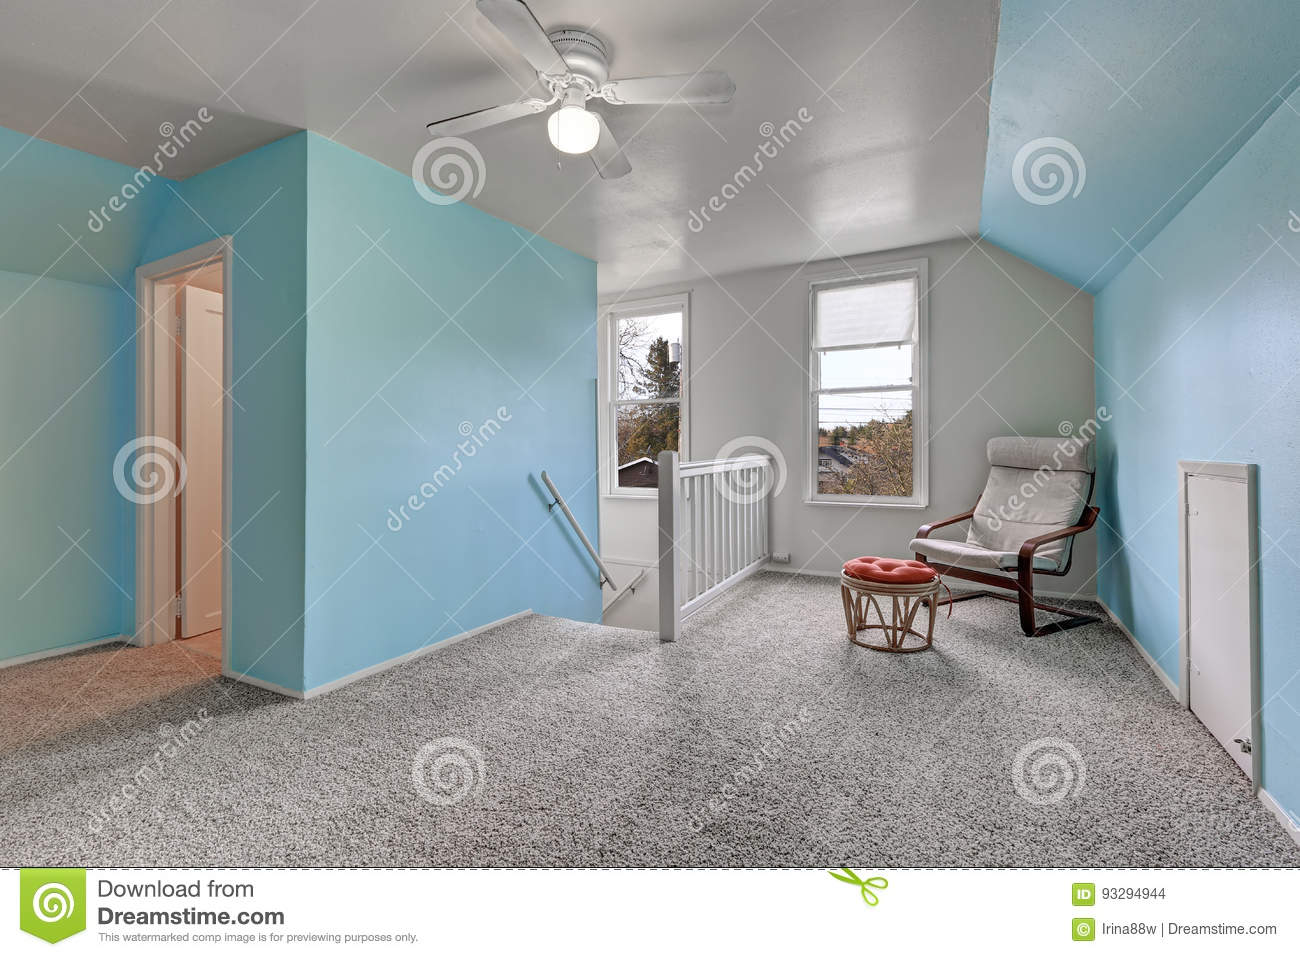 Second Floor Landing With Blue Walls Stock Photo Image Of Home Interior 93294944